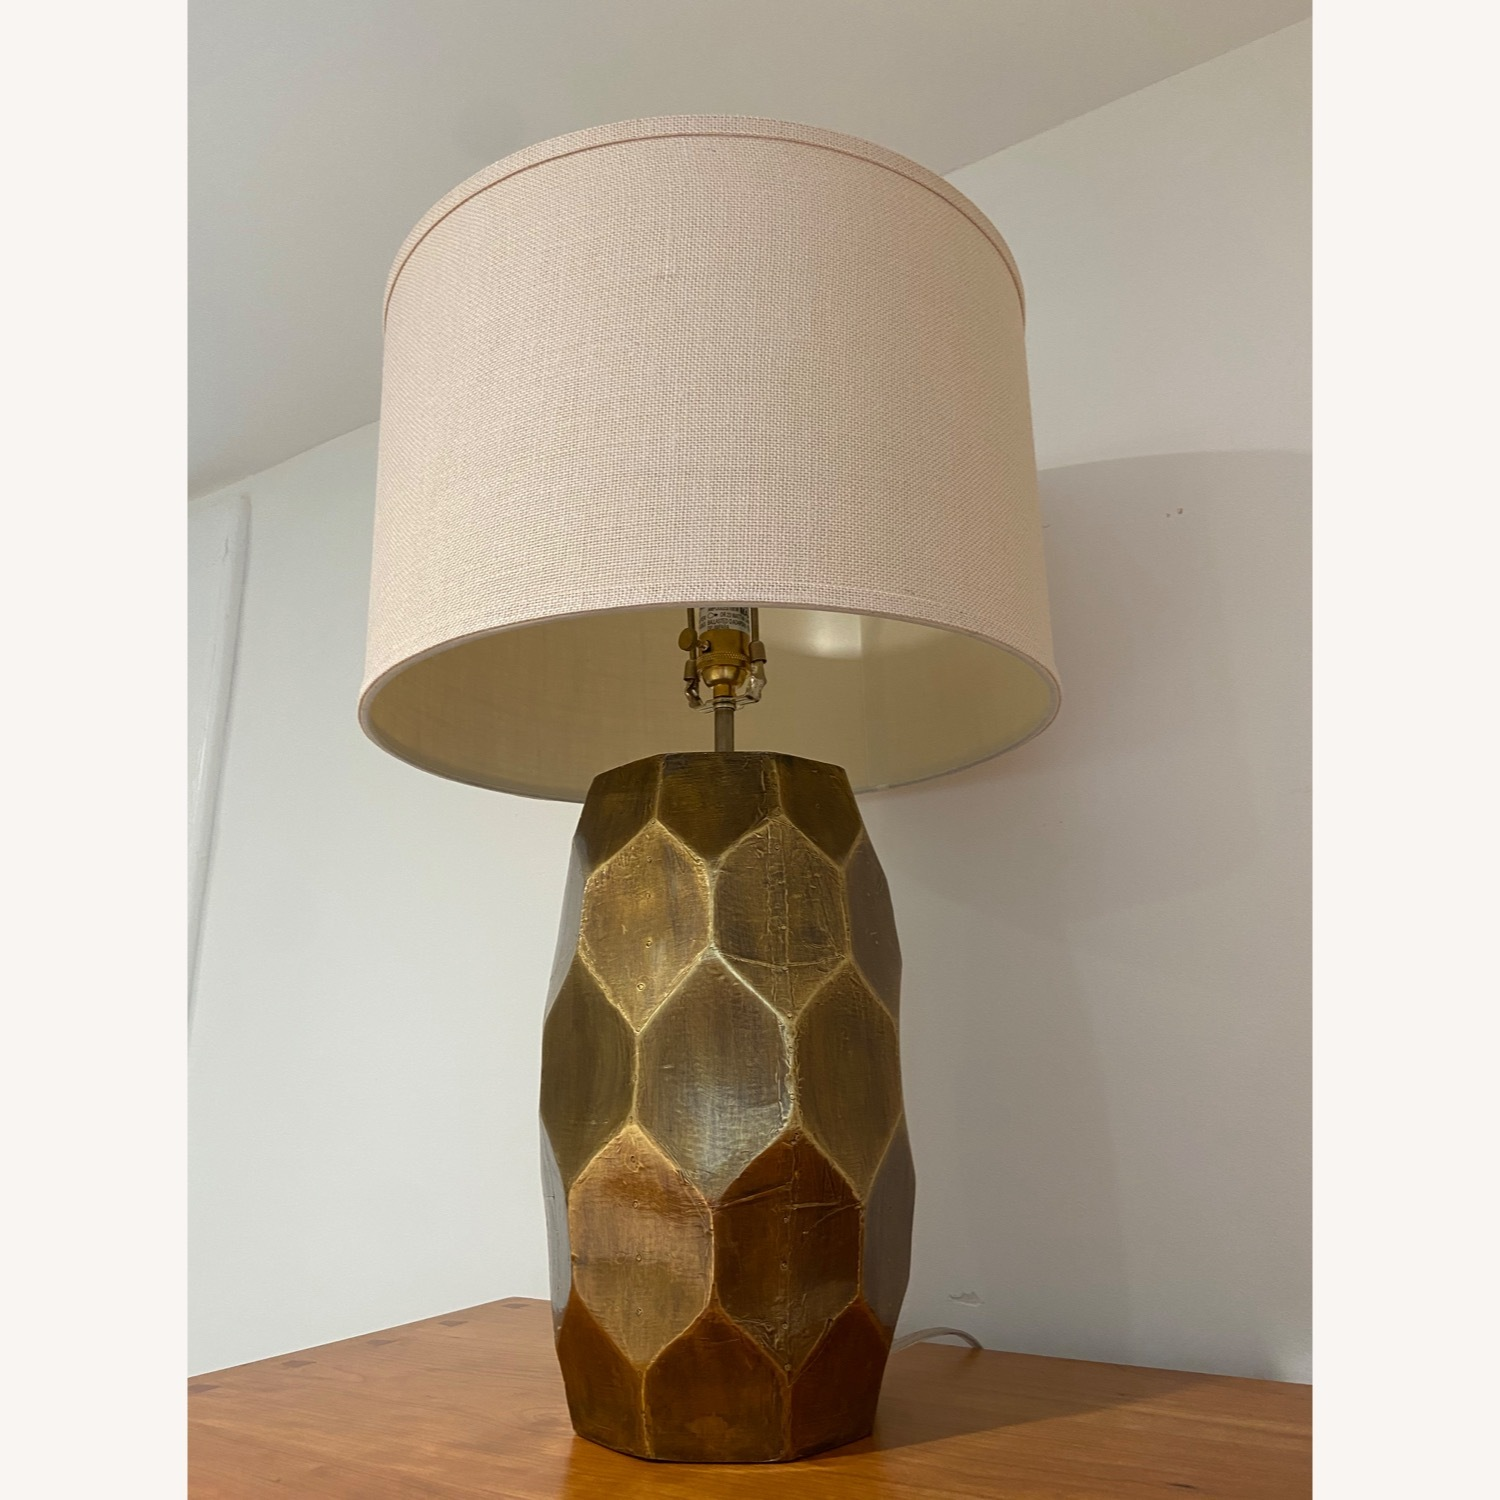 Pottery Barn Hammered Golden Honeycomb Lamps (2) - image-3